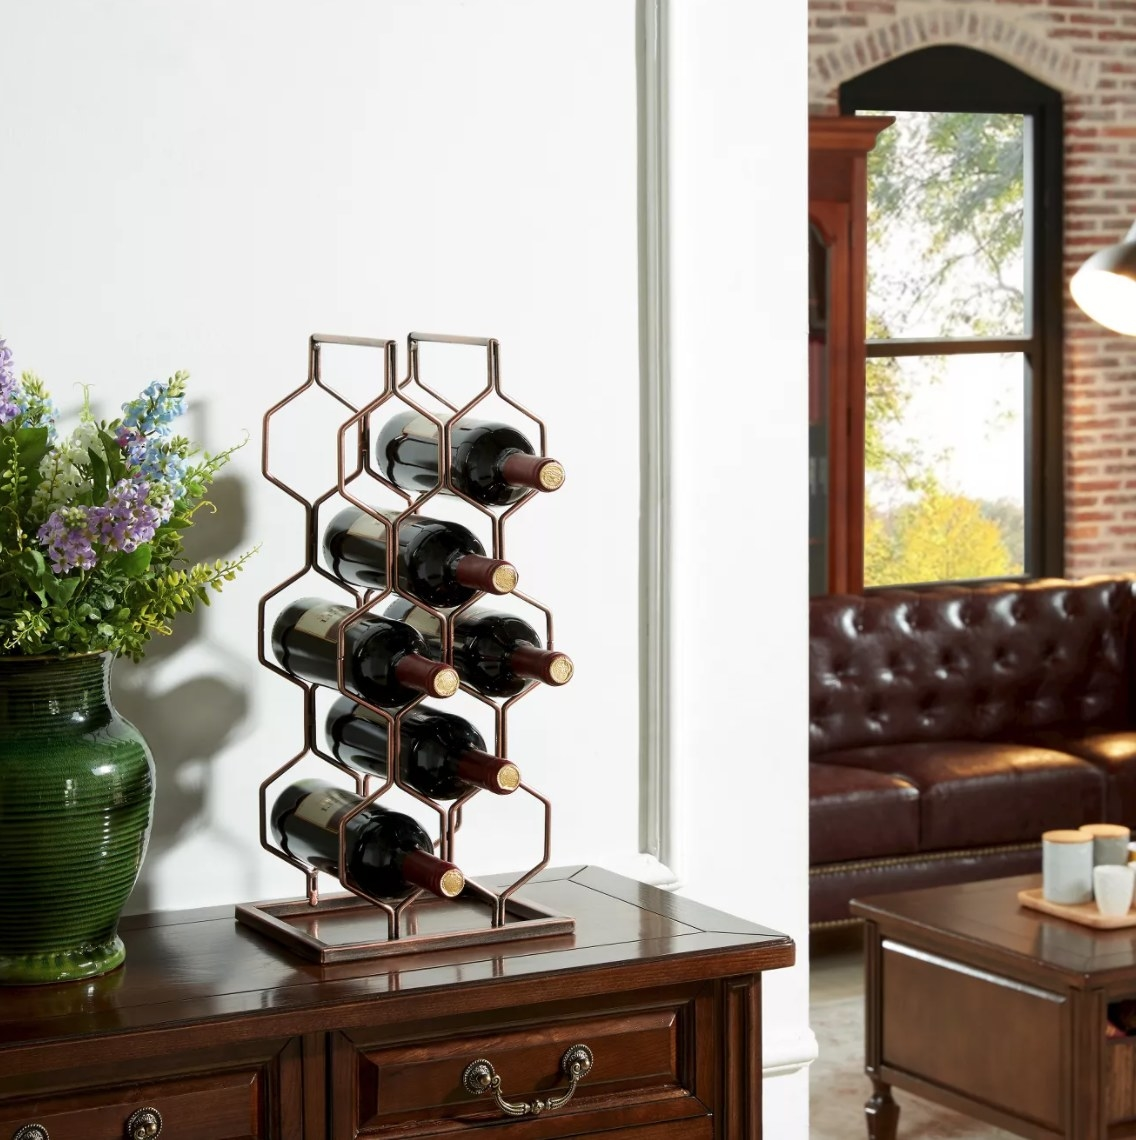 A brass-colored tabletop wine rack